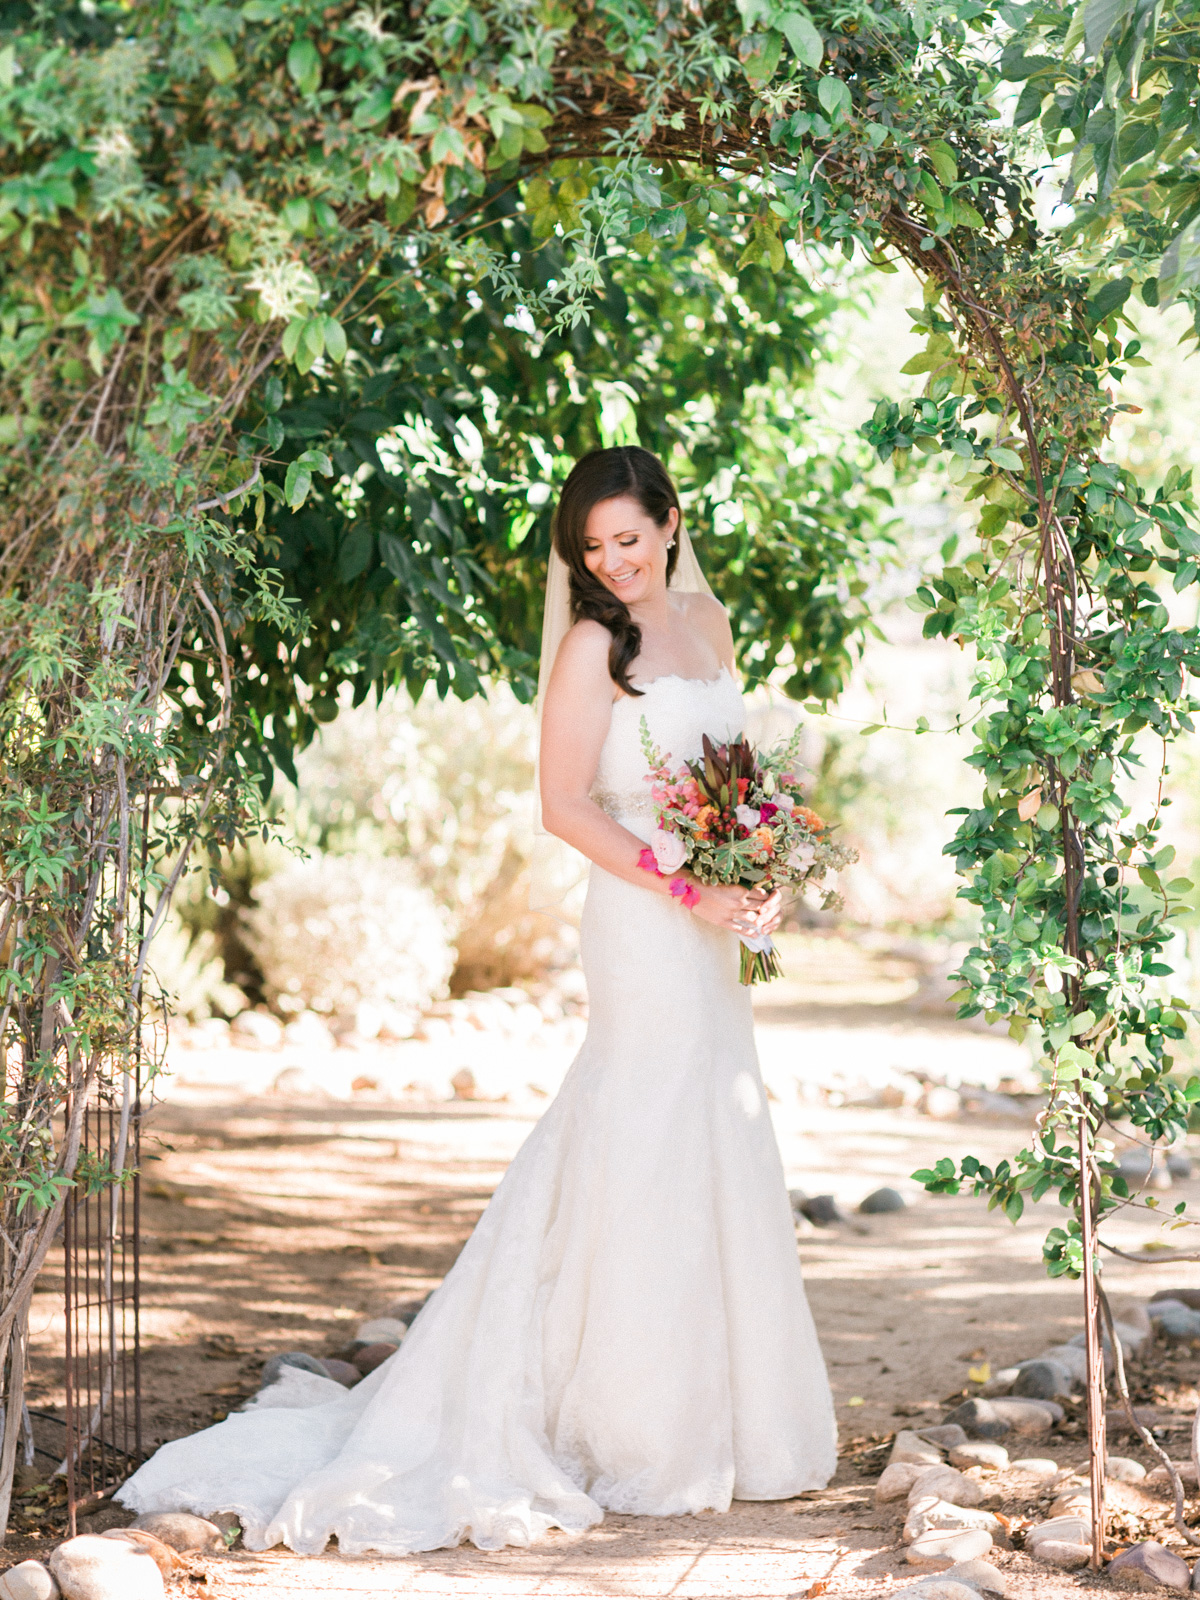 Gorgeous classic bride under green archway captured by Phoenix wedding photographers, Betsy & John